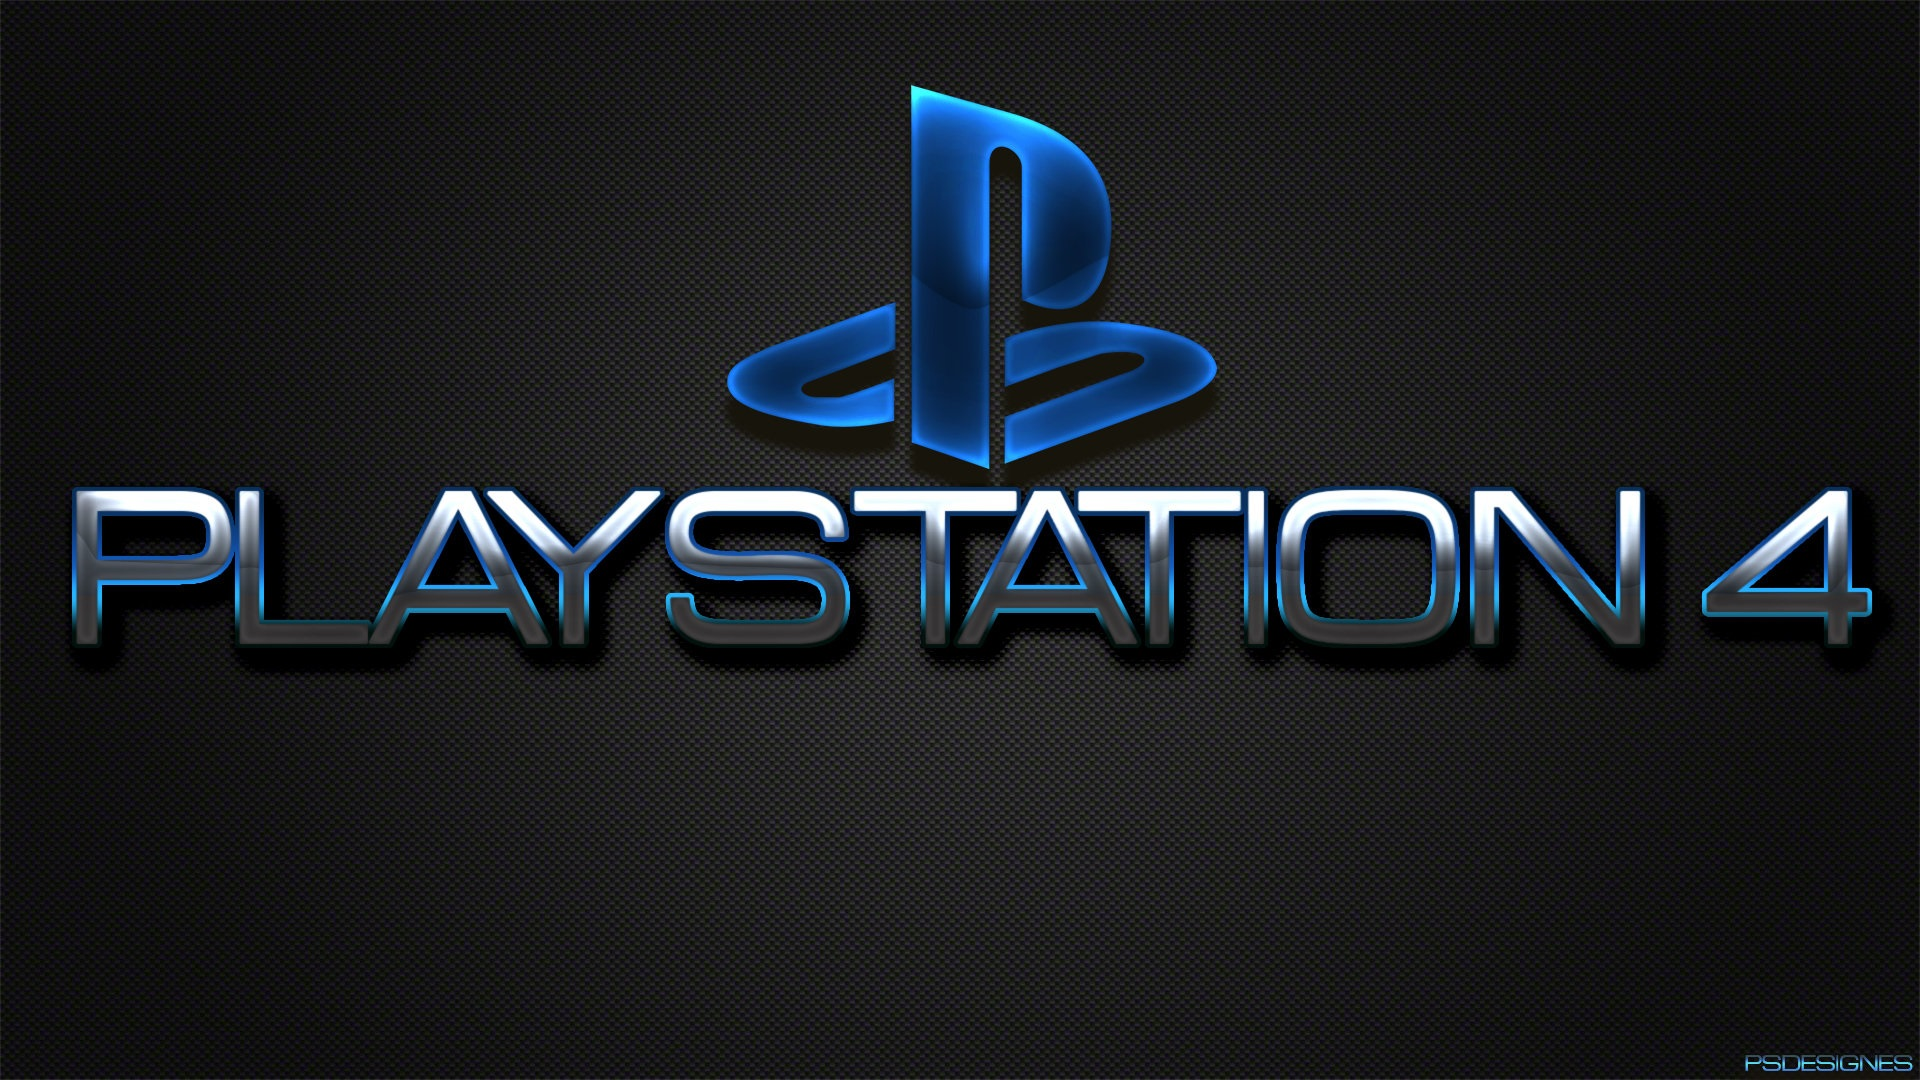 wallpaper playstation 4 logo, sony 1920x1080 full hd picture, image